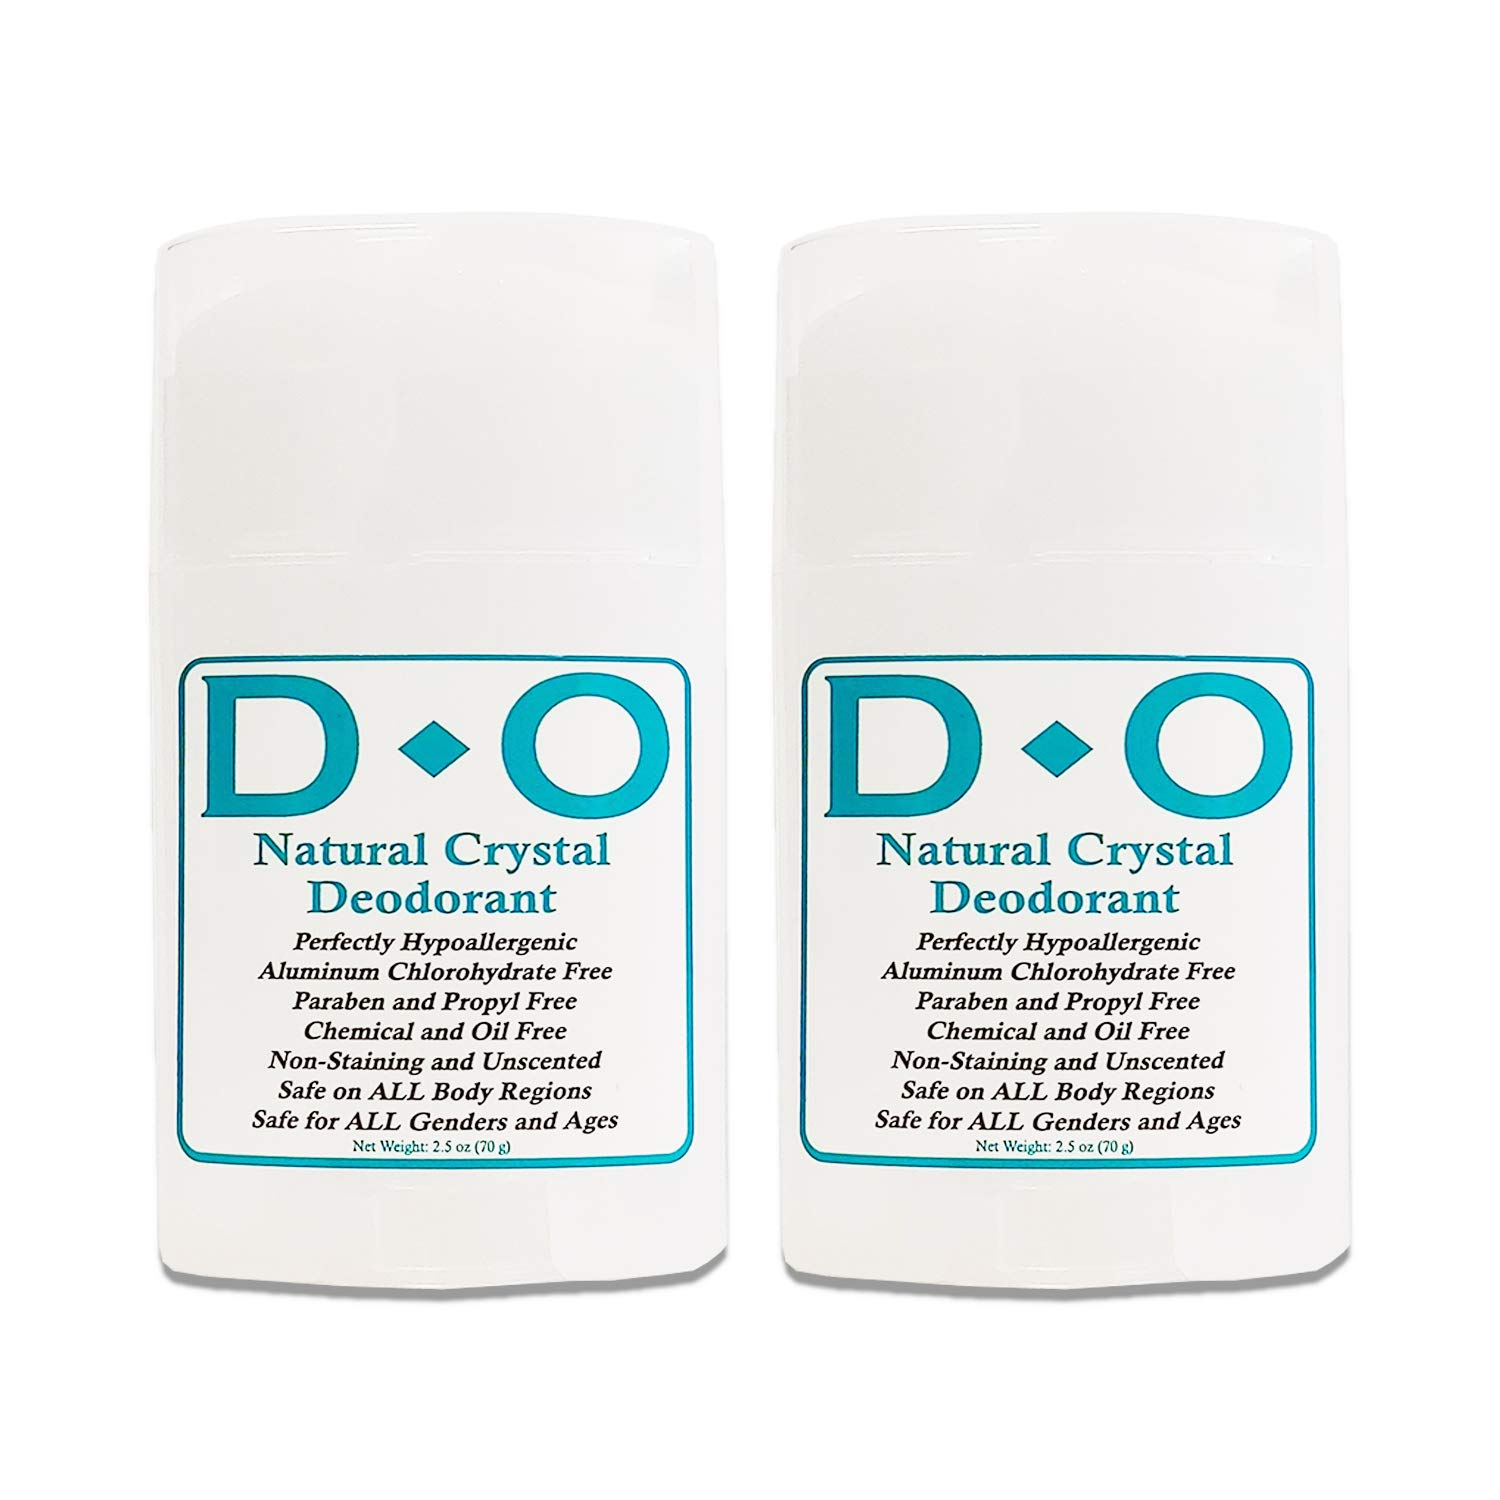 D-O 100% Natural, Crystal Deodorant Wide Stick, 70 G, No Aluminum Chlorohydrate, Parabens, Propyls, or Other Chemicals (2 Pack)